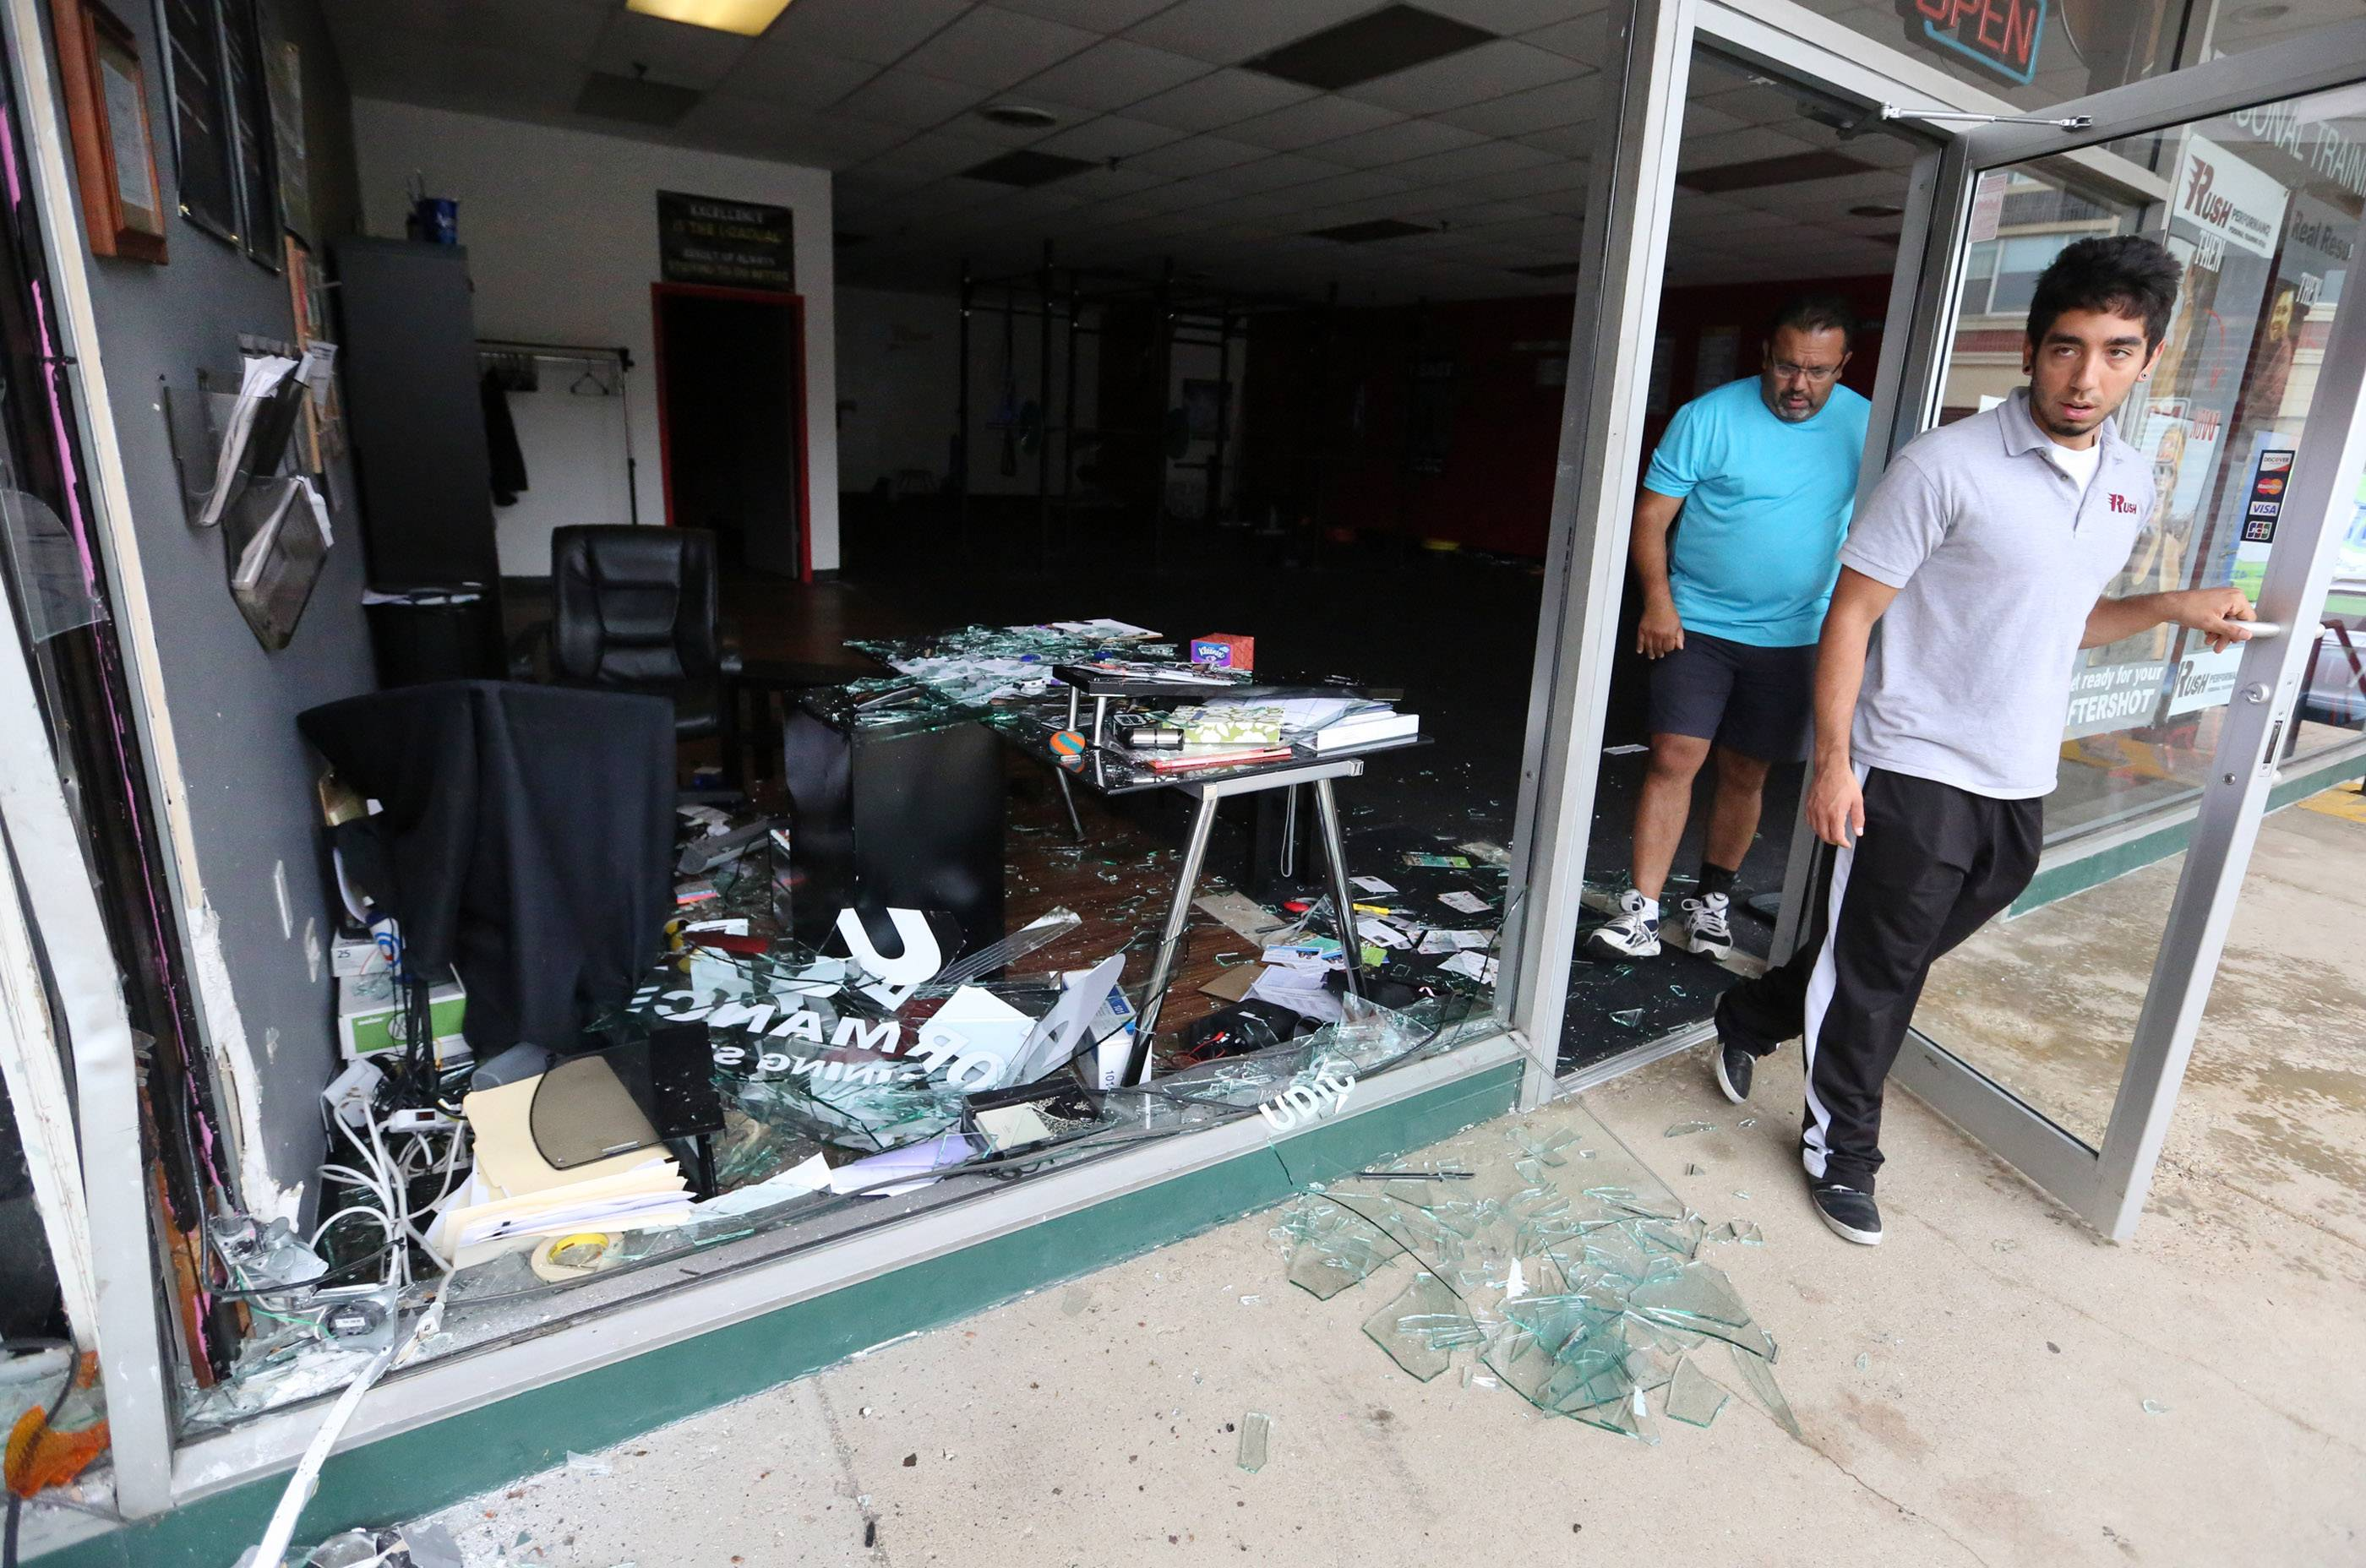 A.J. Rivera, general manager of Rush Performance personal training studio in Arlington Heights, leaves his business Thursday after evaluating damages caused by an SUV that crashed.